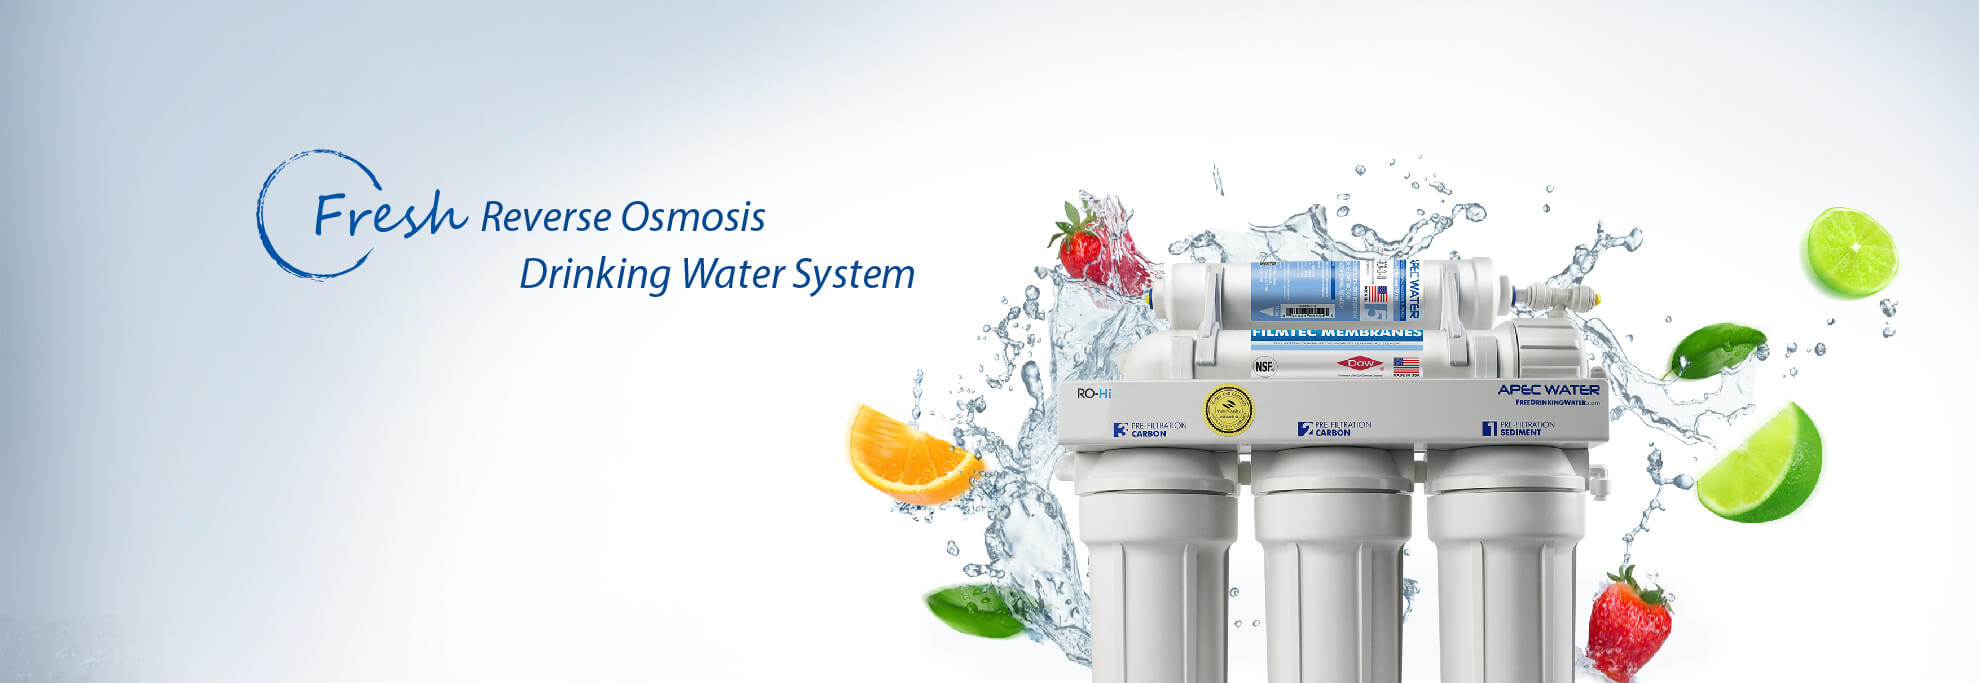 Fresh Reverse Osmosis Drinking Water System